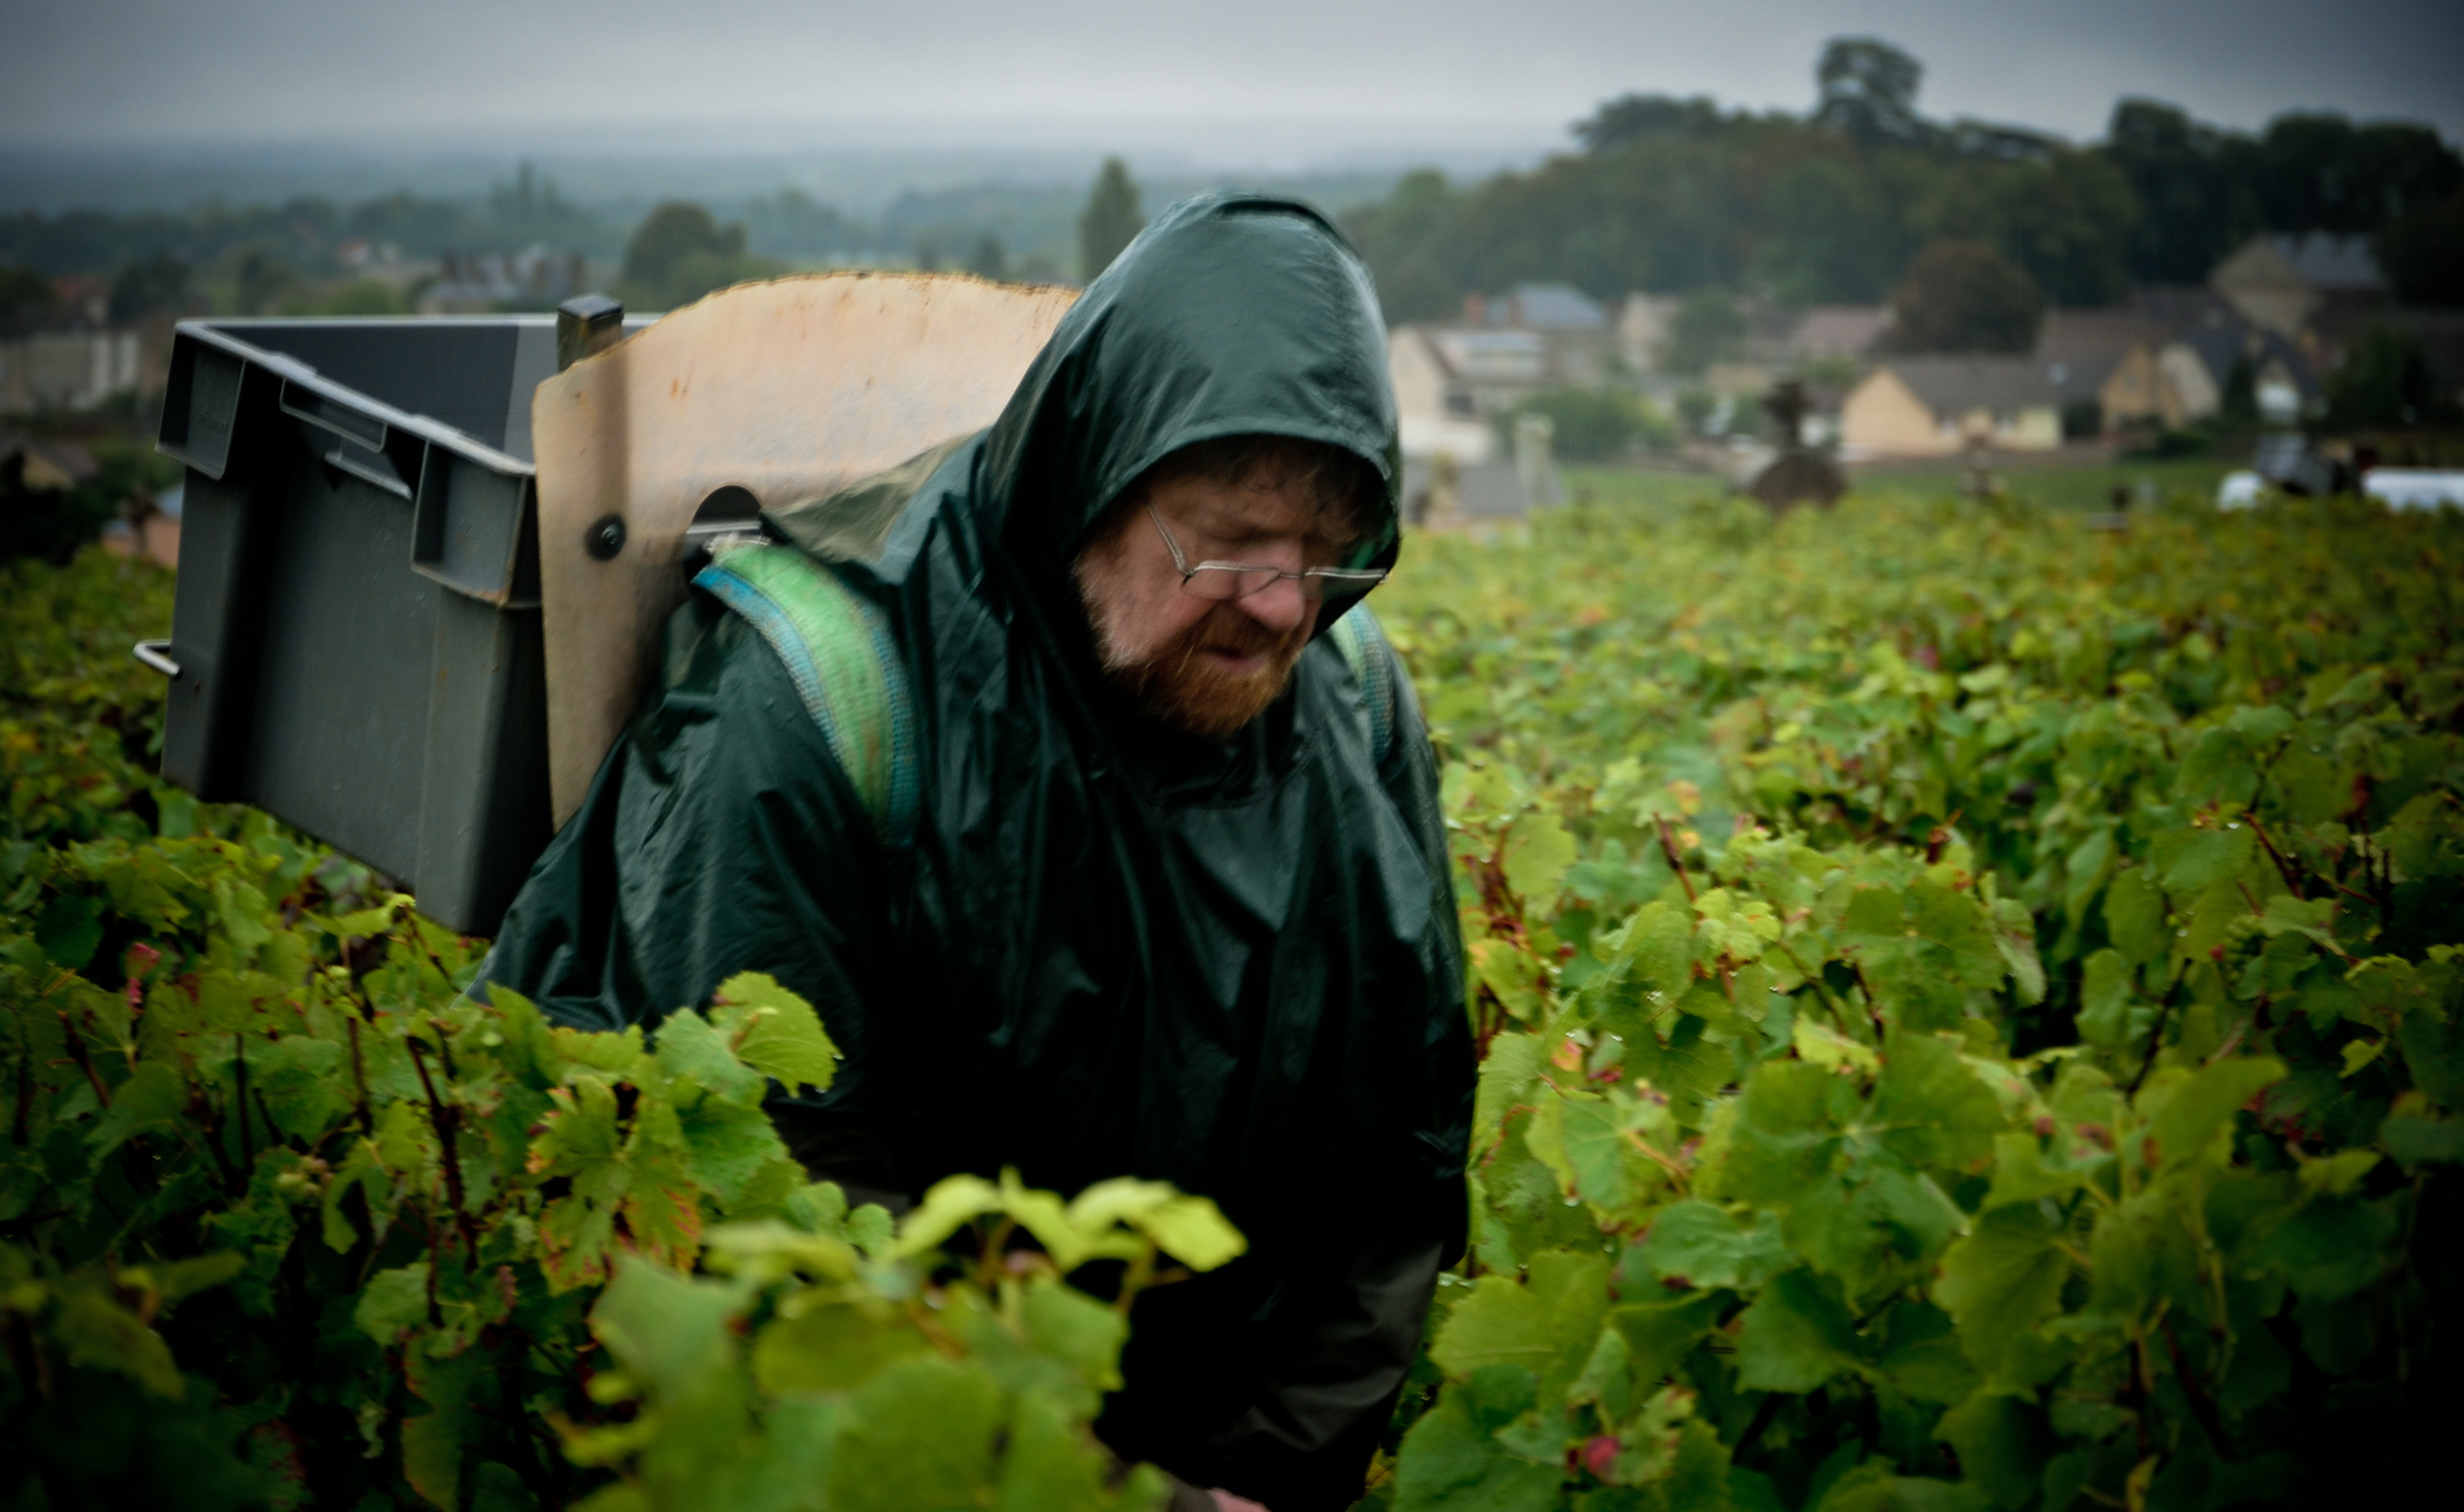 Hungry_Cyclist_Burgundy_Harvest12-16.jpg